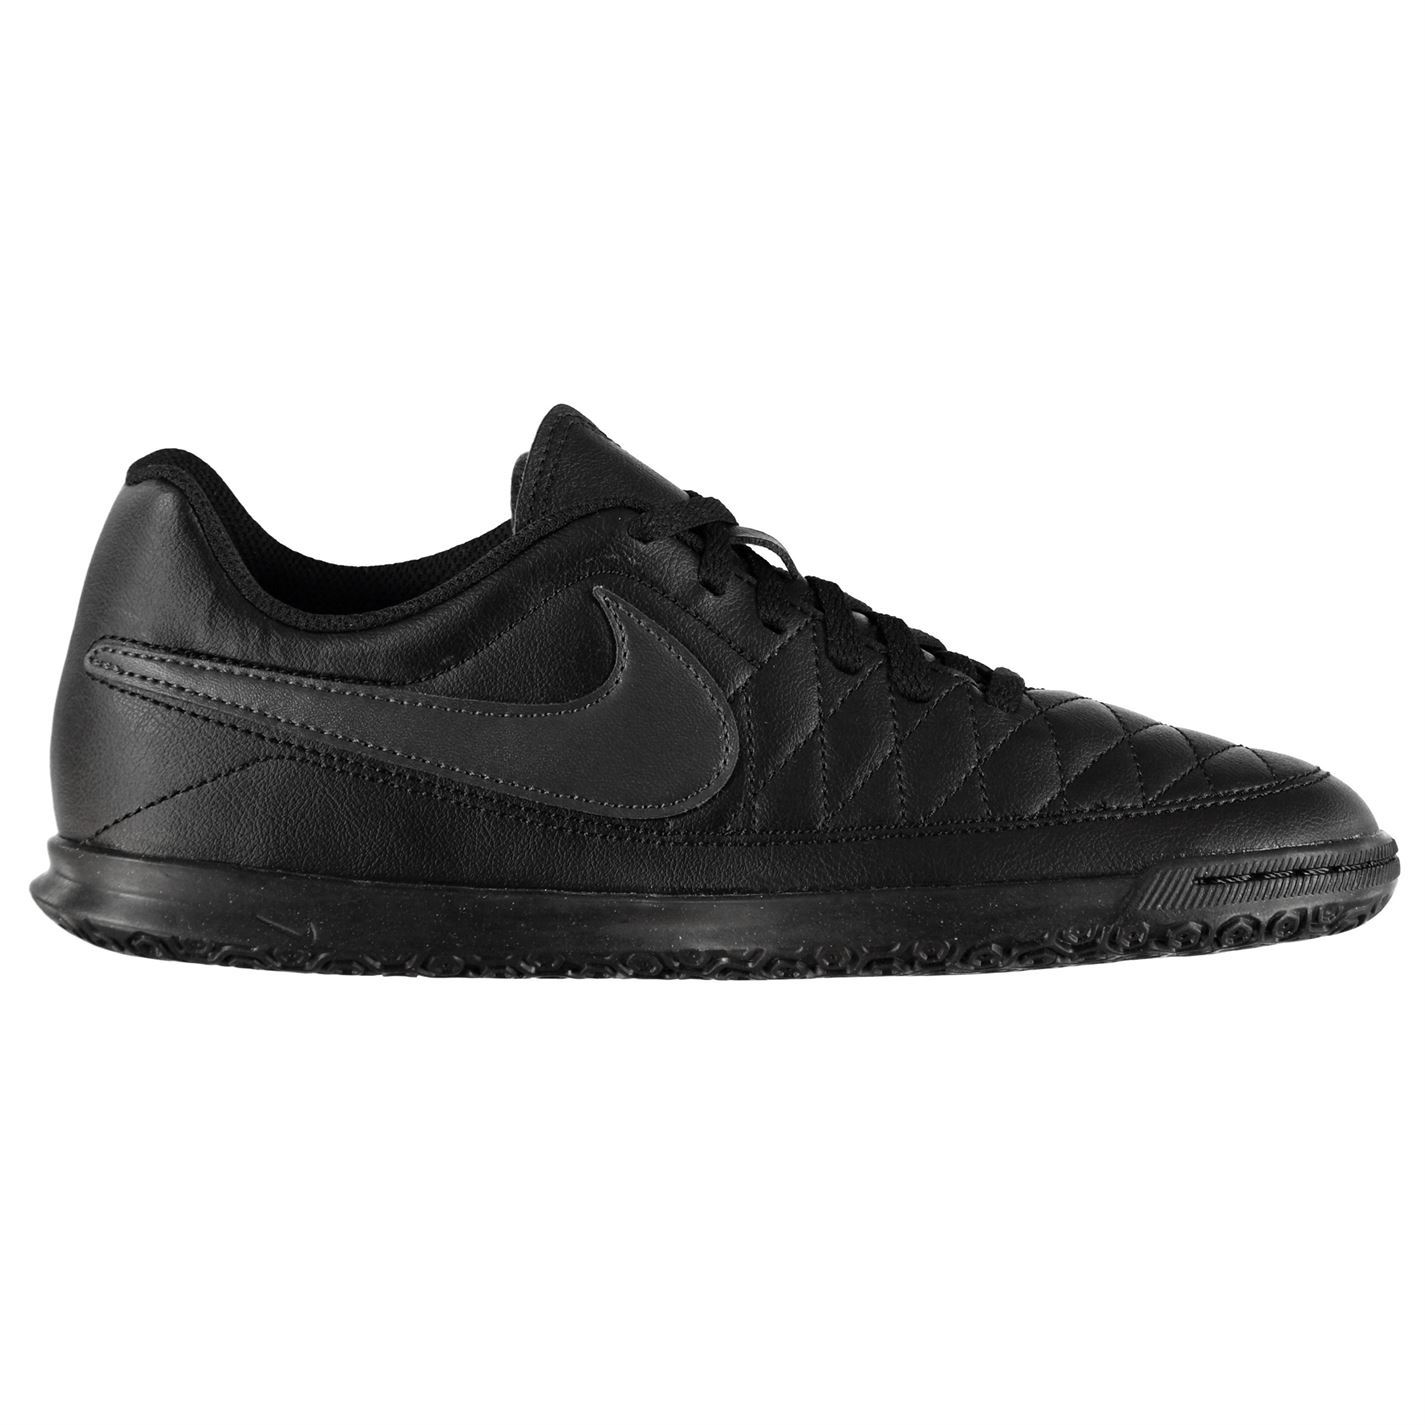 Nike-majestry-Indoor-Football-Baskets-Pour-Homme-Football-Futsal-Chaussures-Baskets-Bottes miniature 6